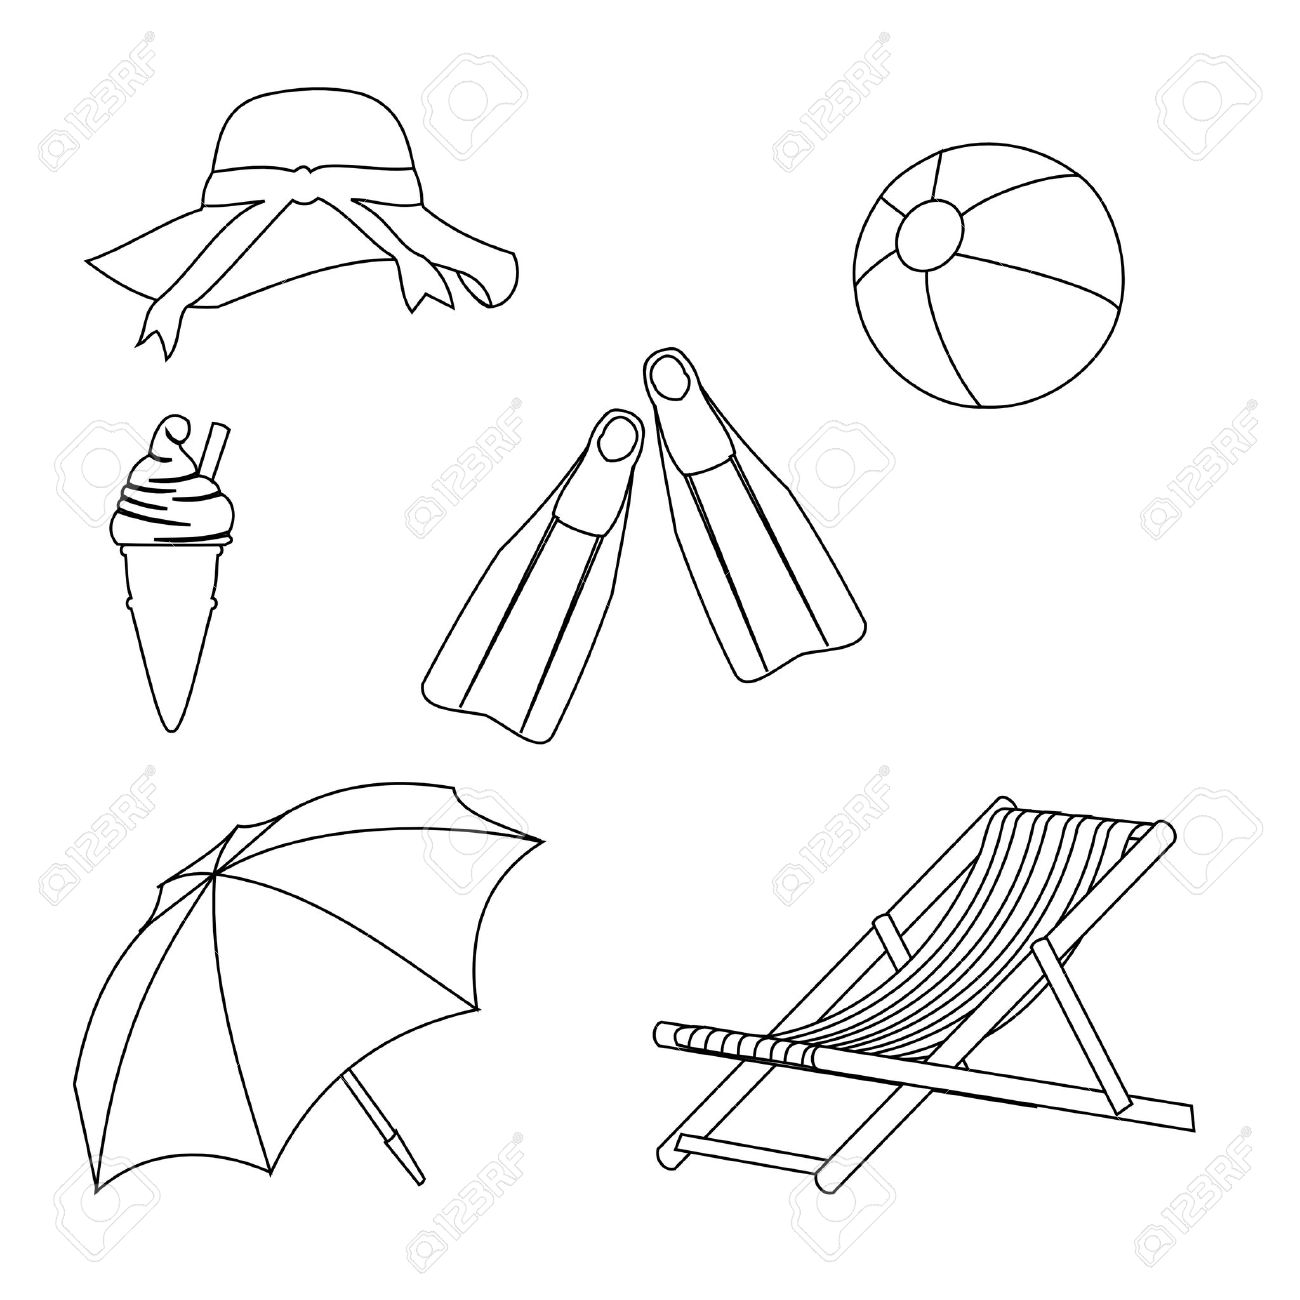 Beach chair and umbrella sketch - Deck Chair Beach Objects Line Style Drawing